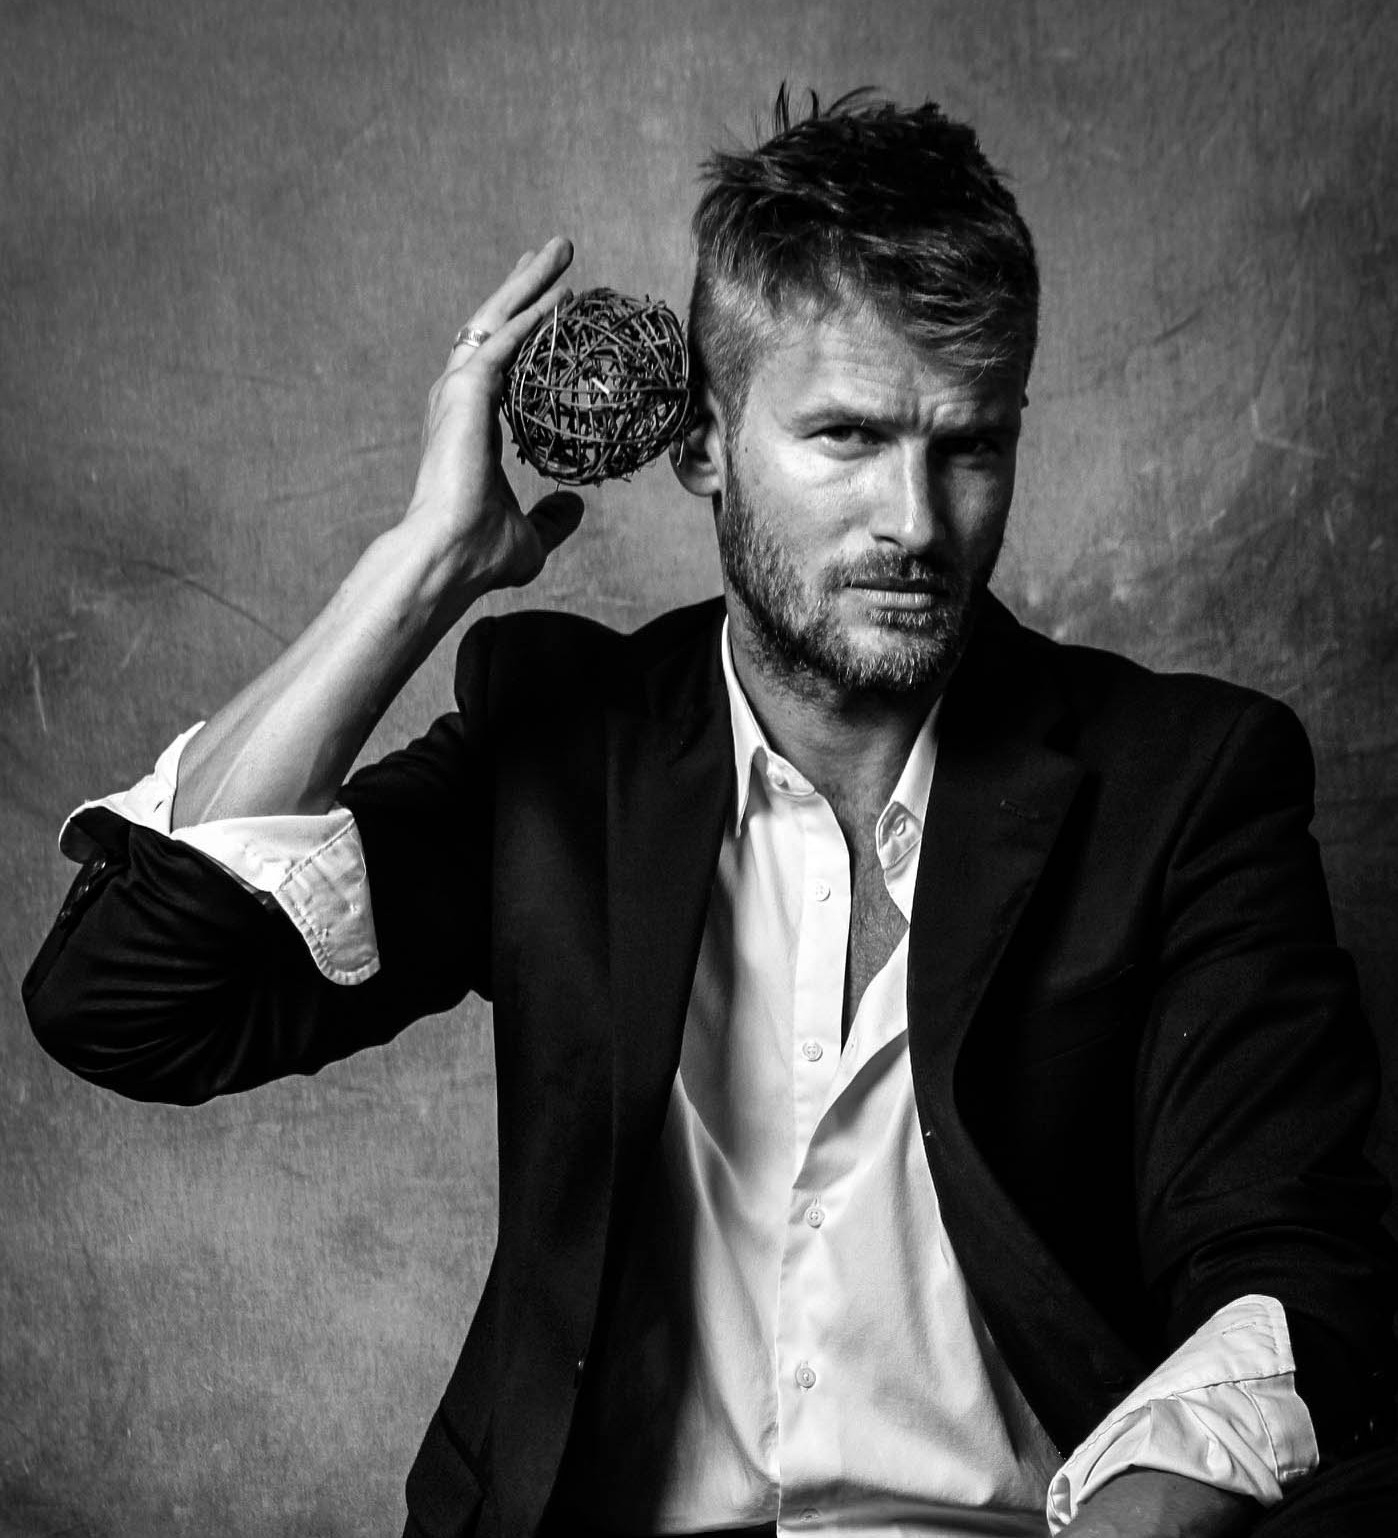 johann urb twitterjohann urb instagram, johann urb russian, johann urb wife, johann urb height, johann urb leon kennedy, johann urb facebook, johann urb resident evil, johann urb, johann urb twitter, johann urb imdb, johann urb movies, johann urb model, johann urb resident evil 6, johann urb tumblr, johann urb gay, johann urb shirtless, johann urb 2012, johann urb net worth, johann urb wiki, johann urb hot